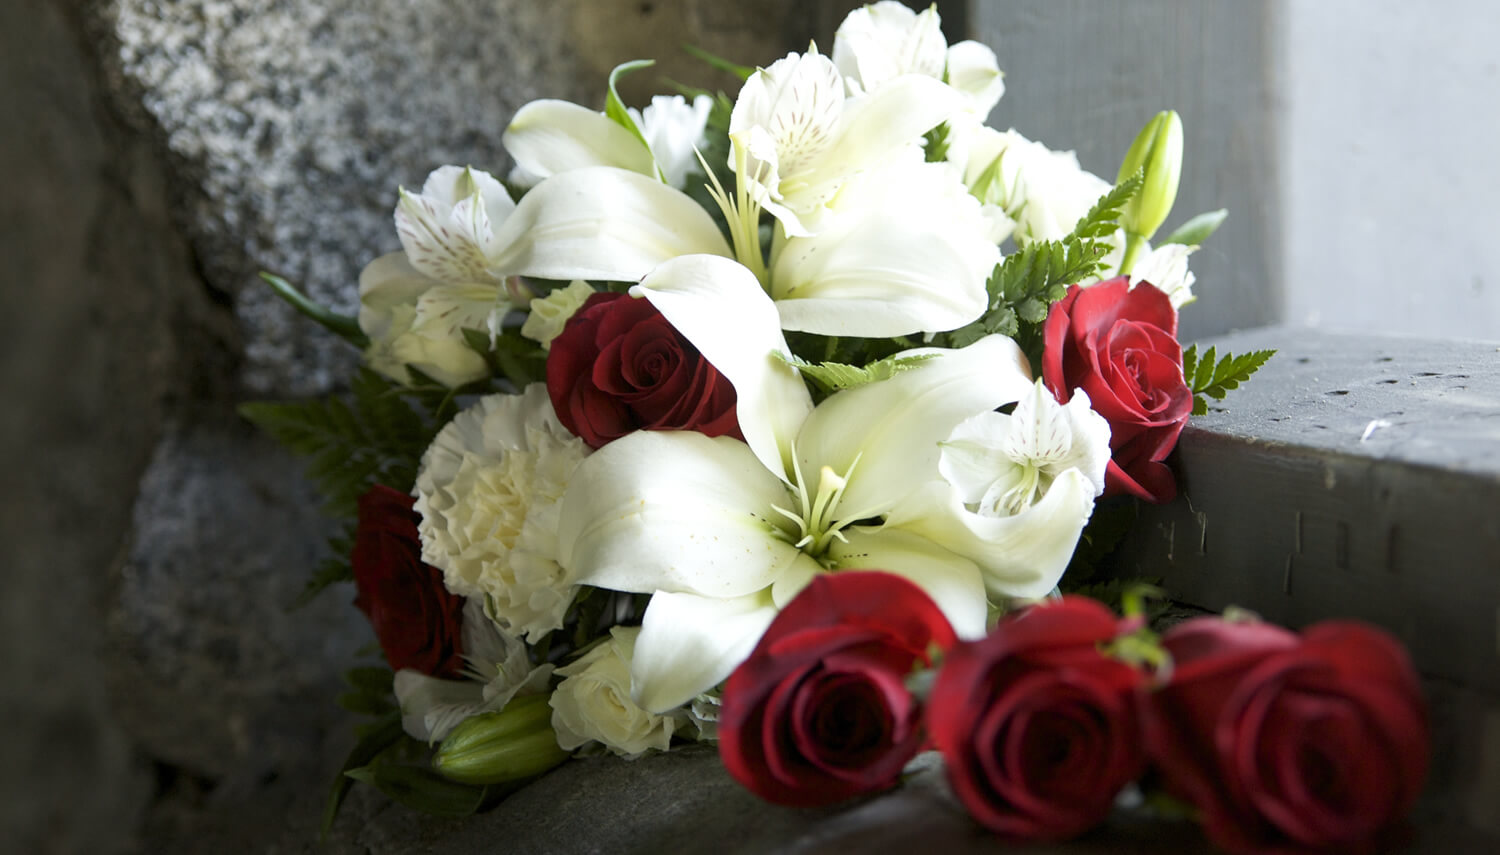 Bridal bouquet with red roses amid with lilies, tiger lilies and carnations and trailing red roses